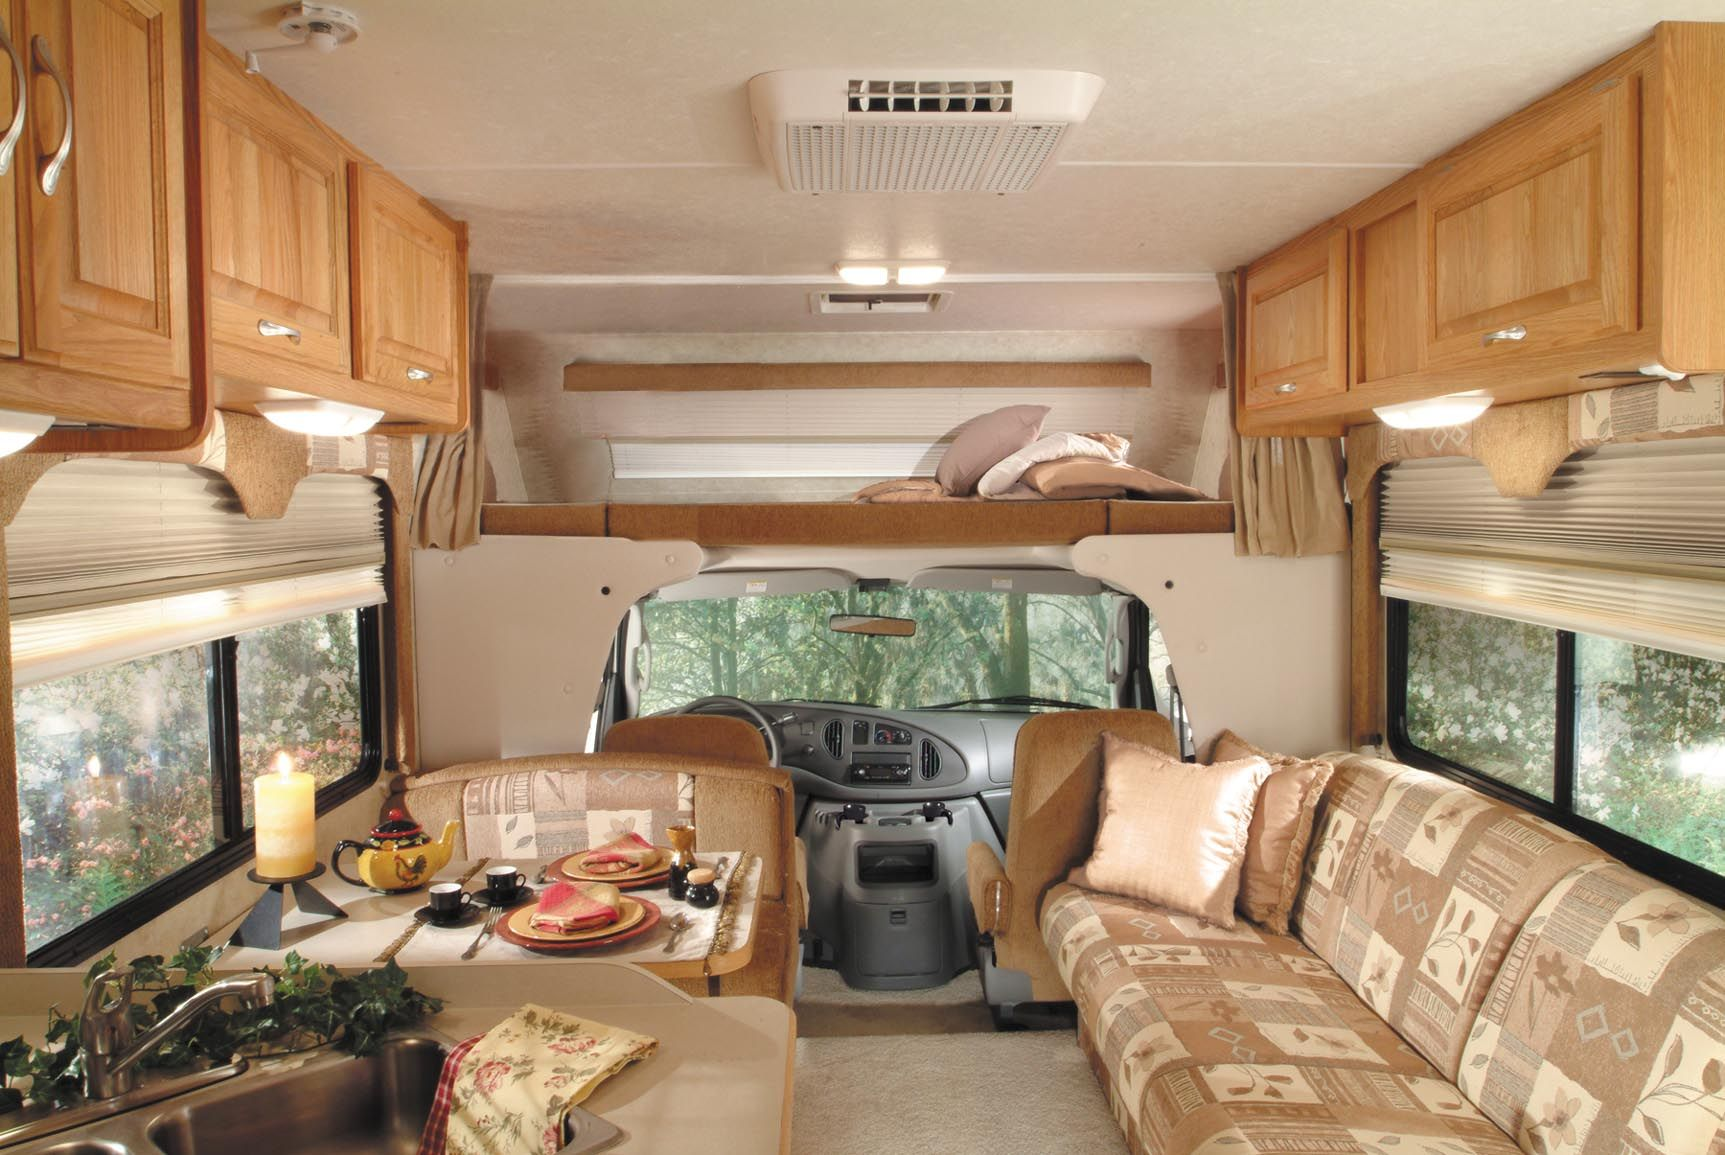 This Picture Shows The Front Of A Class C Motorhome Where The Driver Sits  And The Part 36